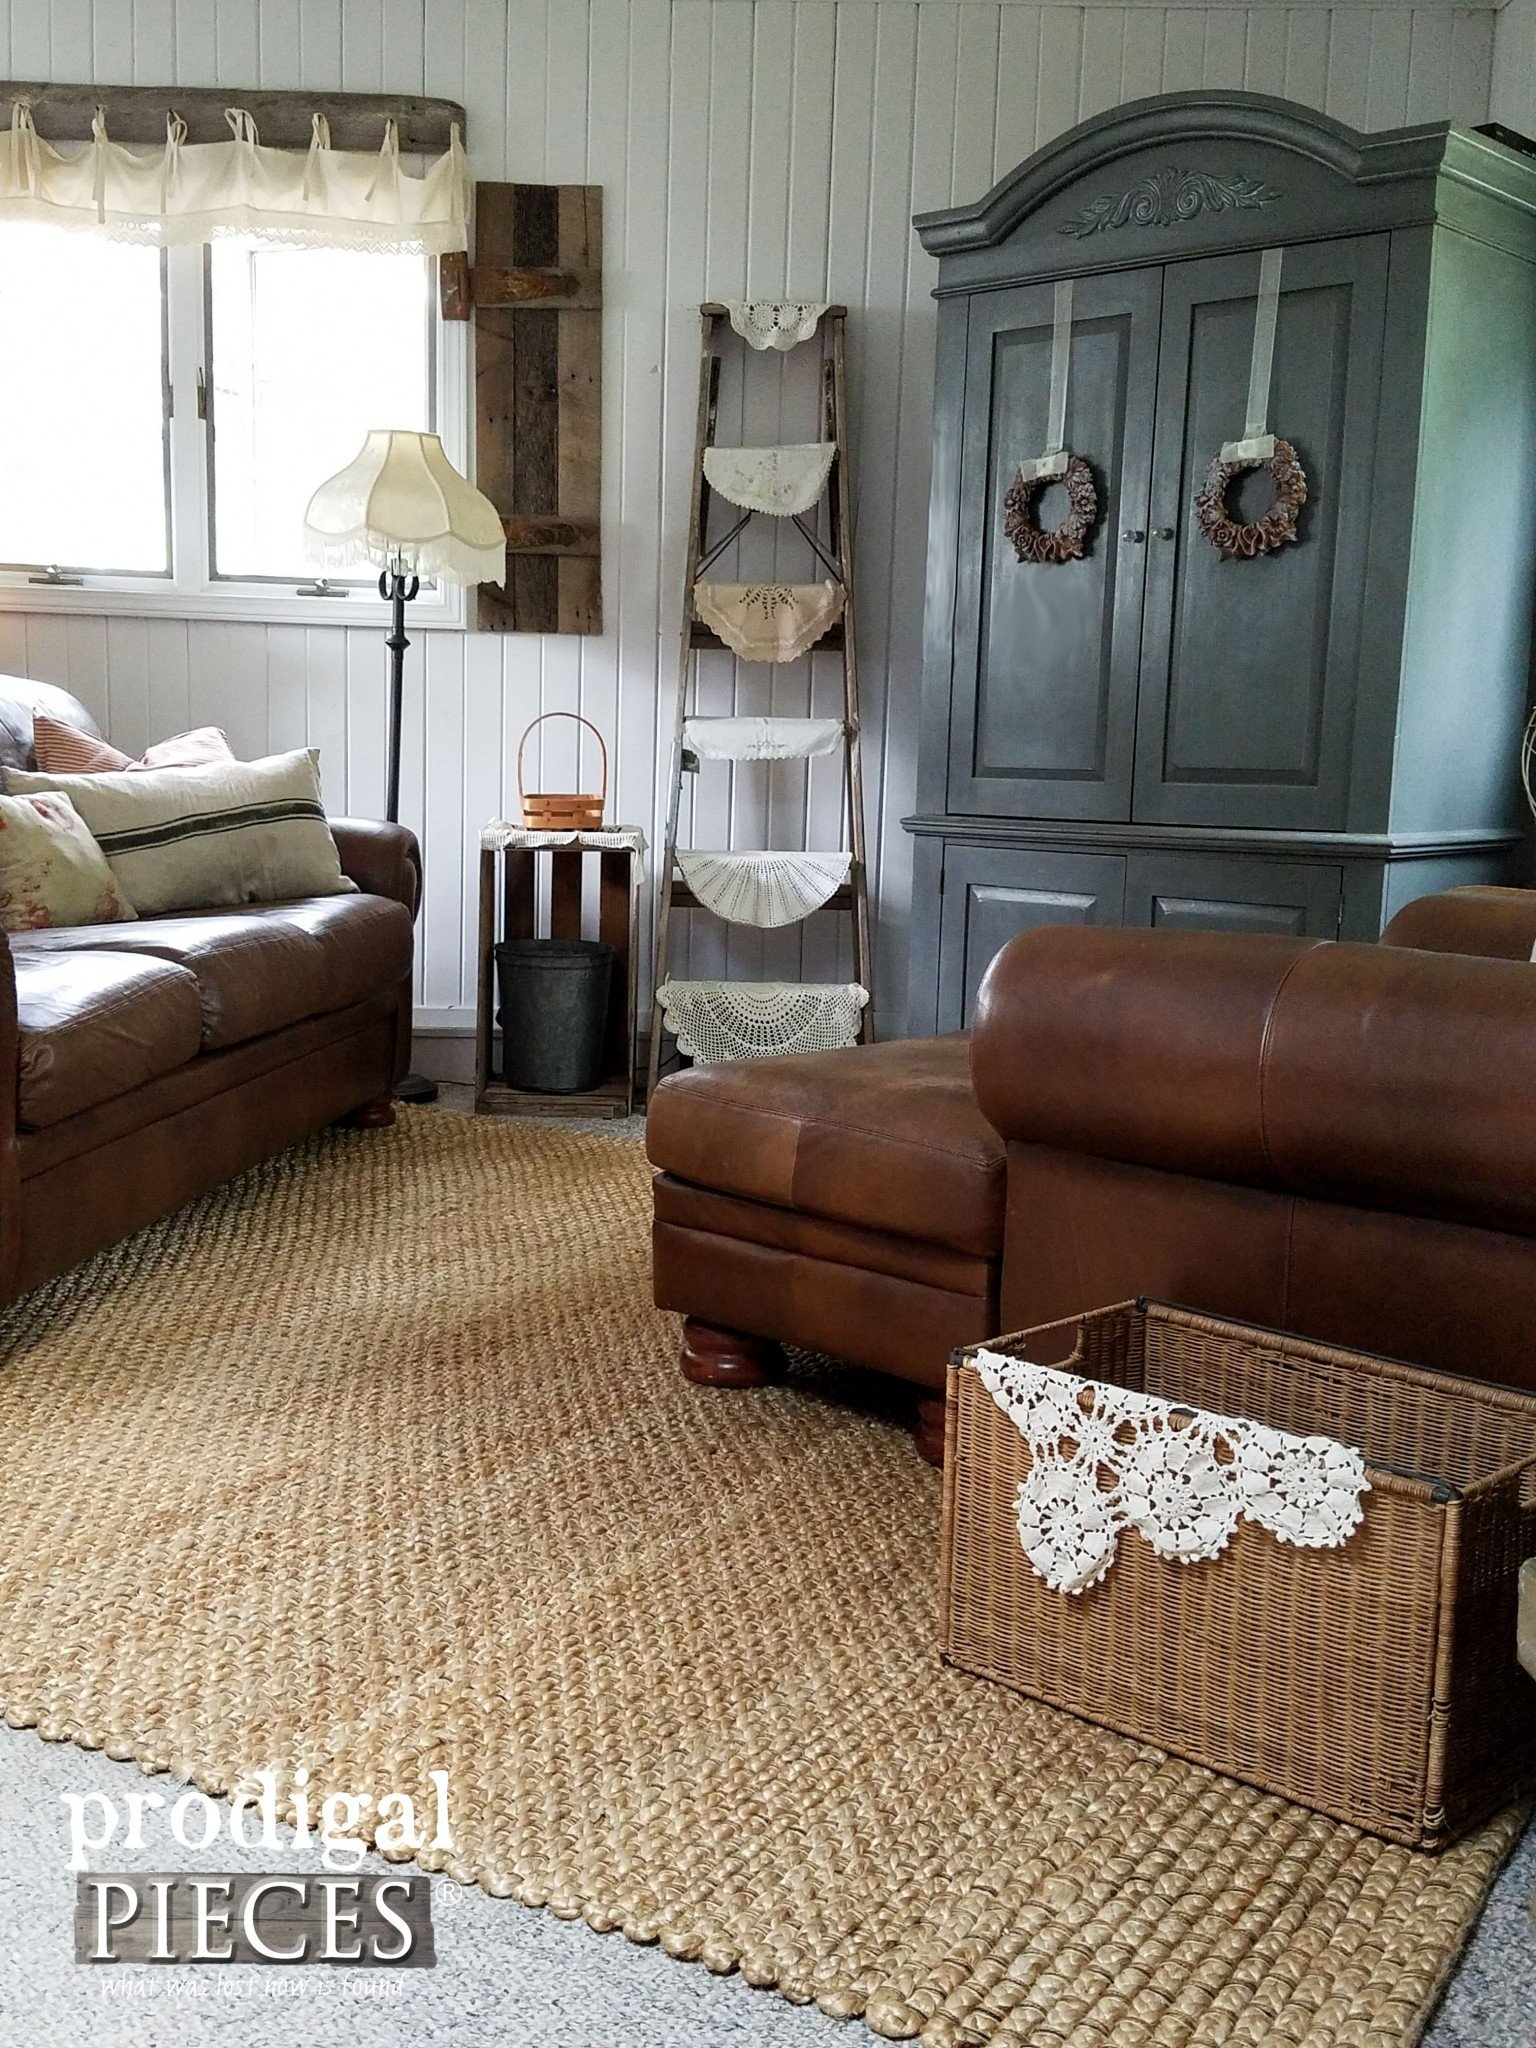 Farmhouse Living Room with Rug Awesome Affordable area Rugs to Fit Any Decor Prodigal Pieces